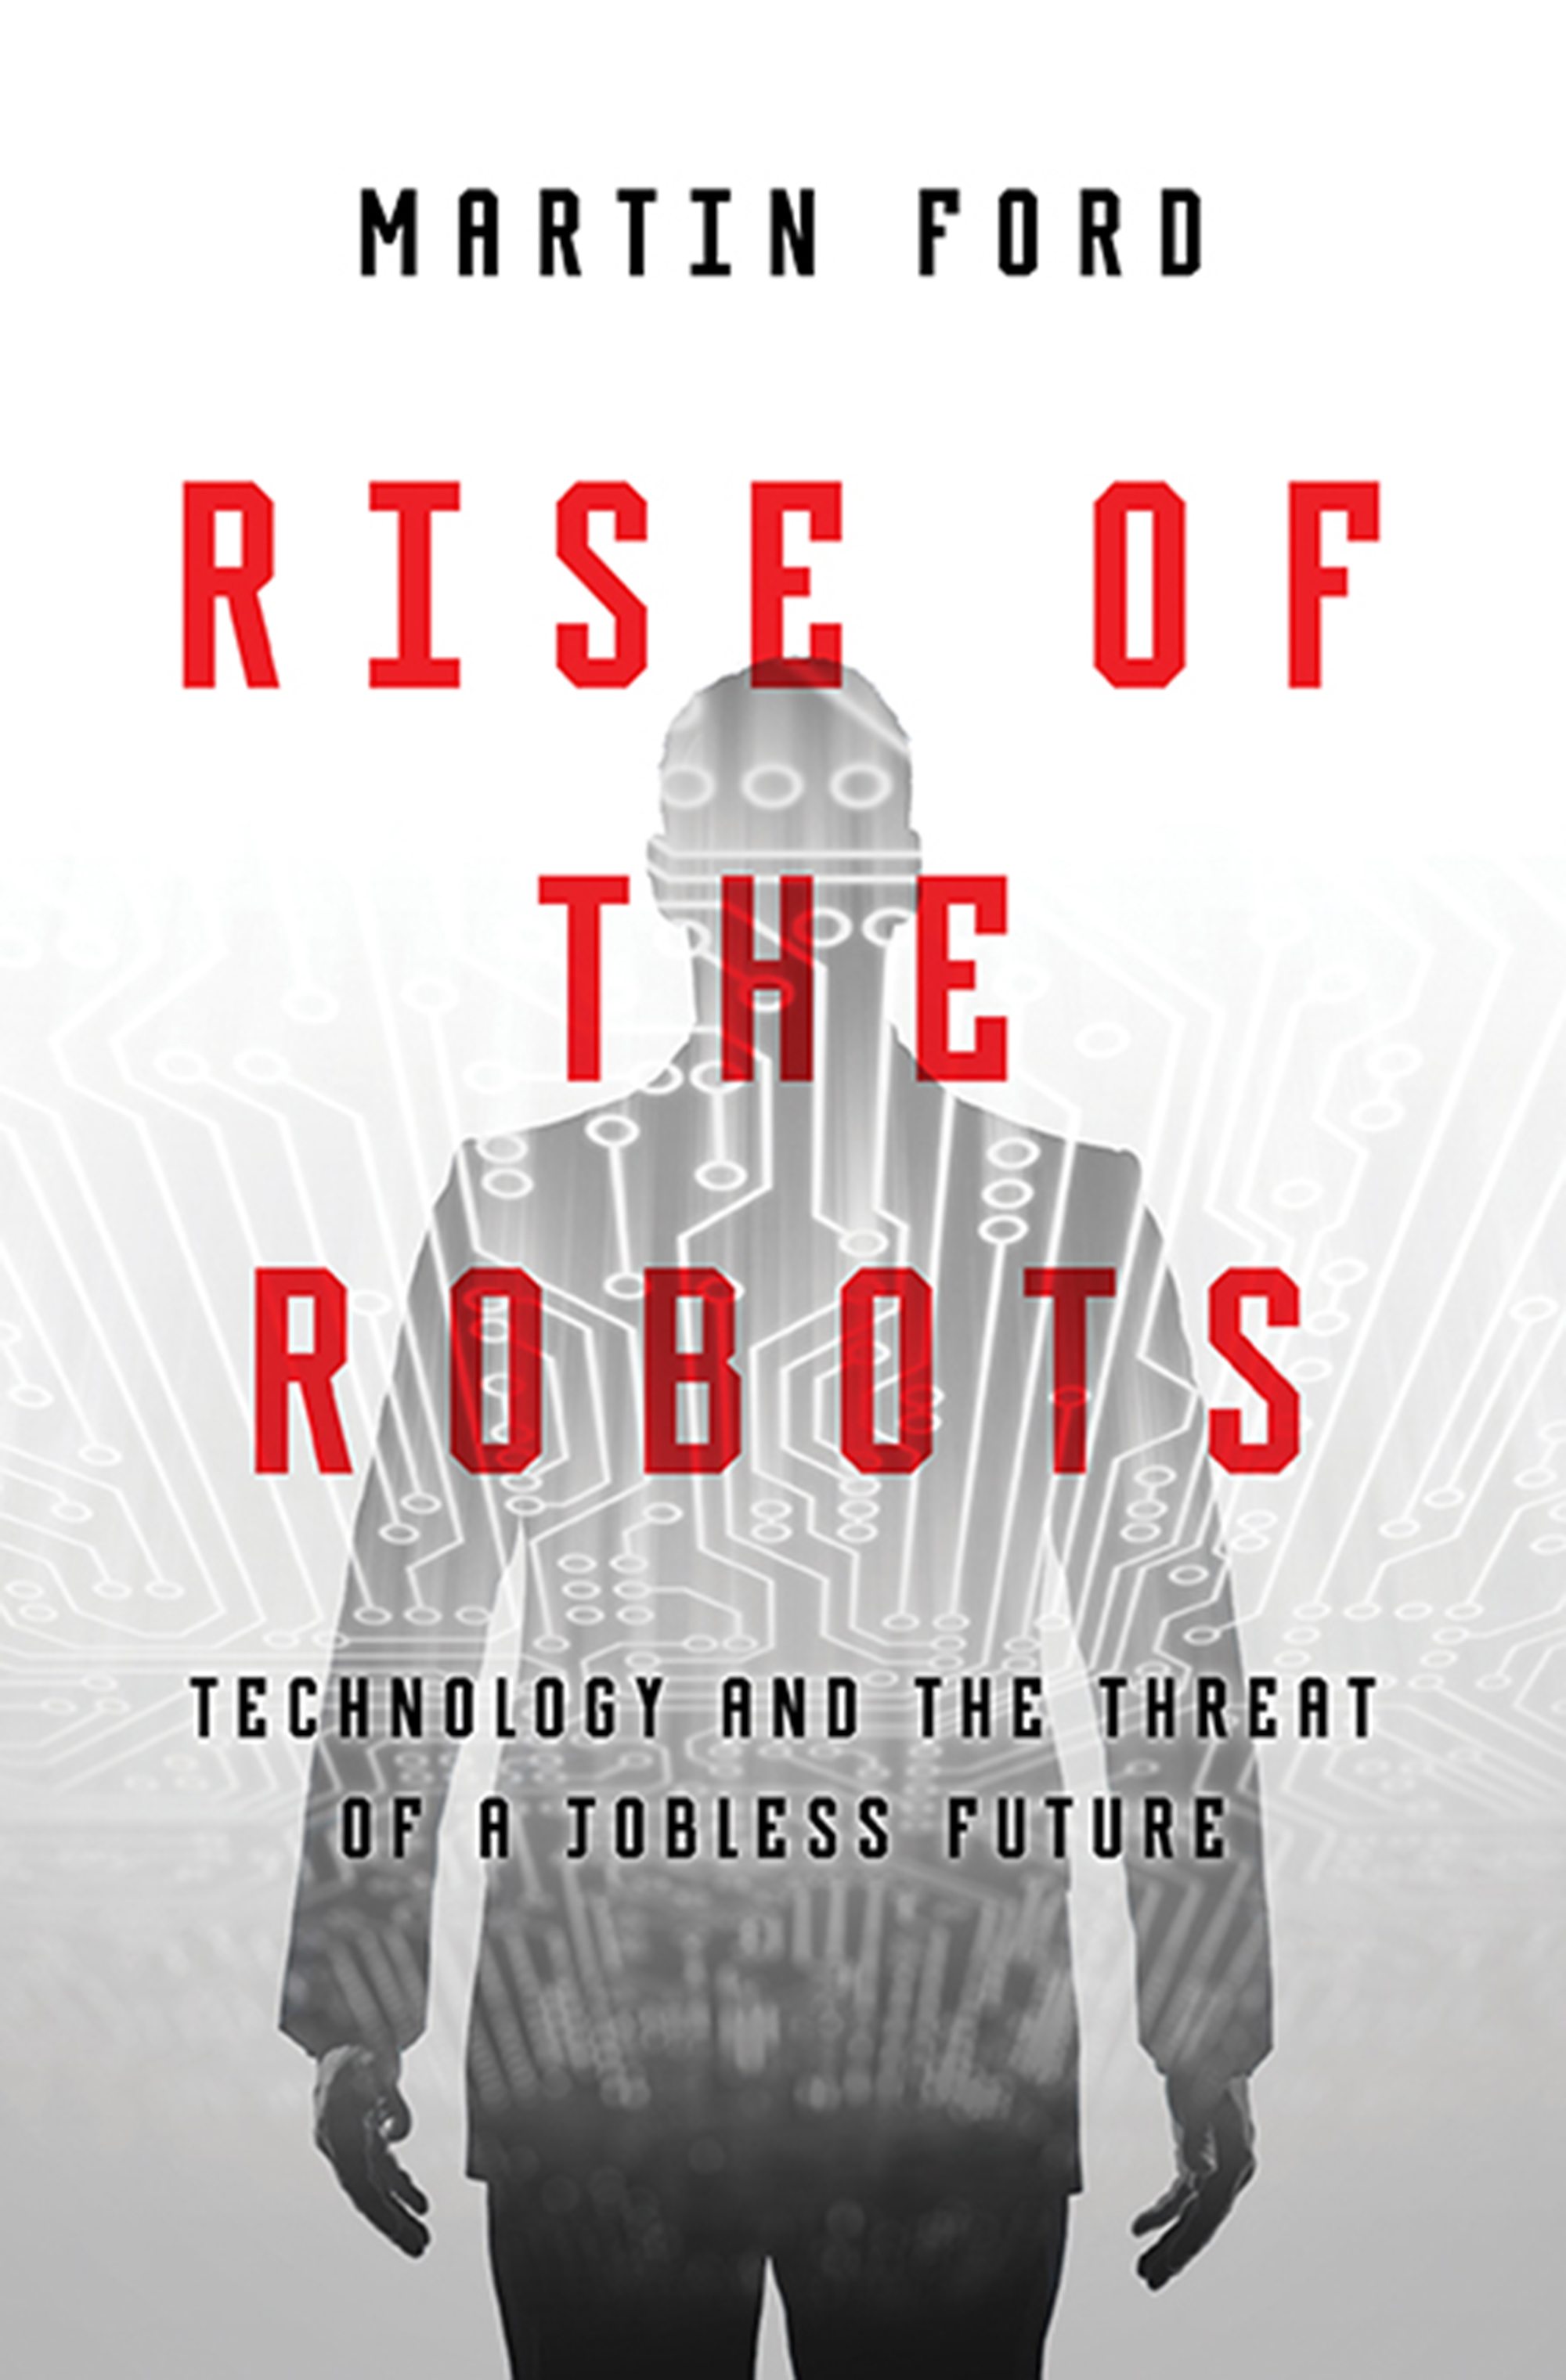 Martin Ford's 2015 book on technology's influence on the future.